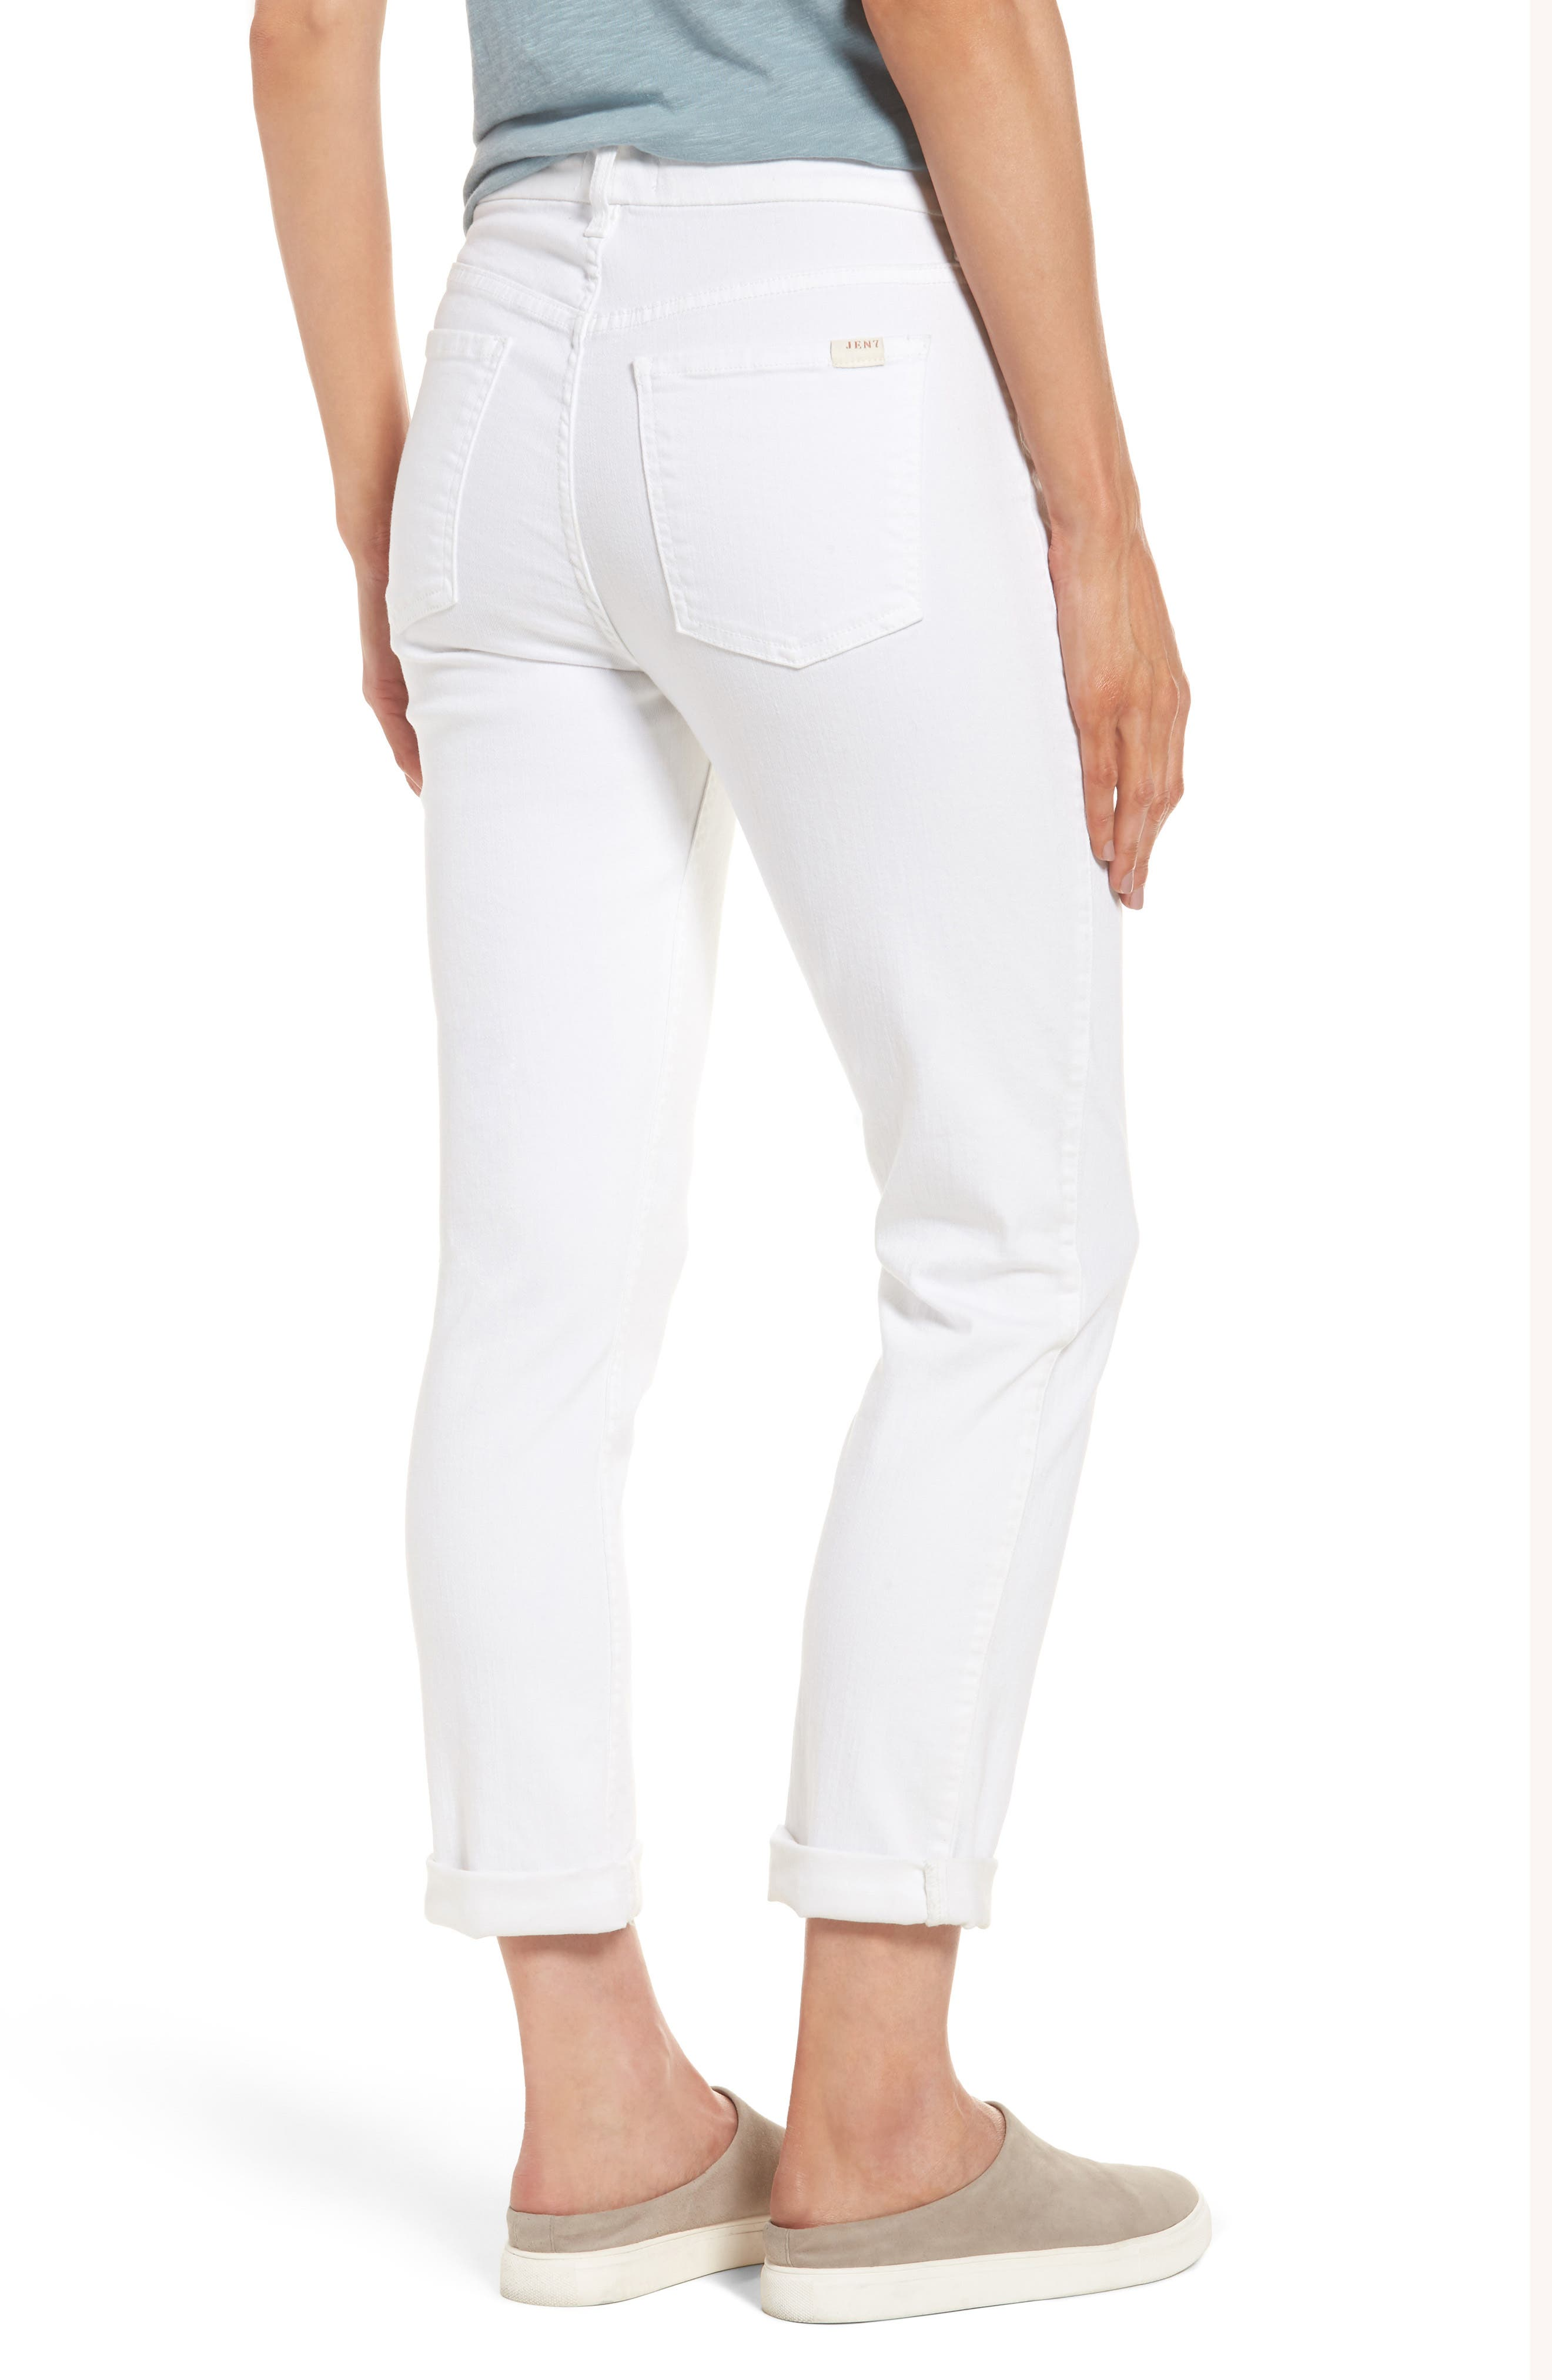 JEN7 BY 7 FOR ALL MANKIND, Stretch Straight Leg Crop Jeans, Alternate thumbnail 2, color, WHITE DENIM